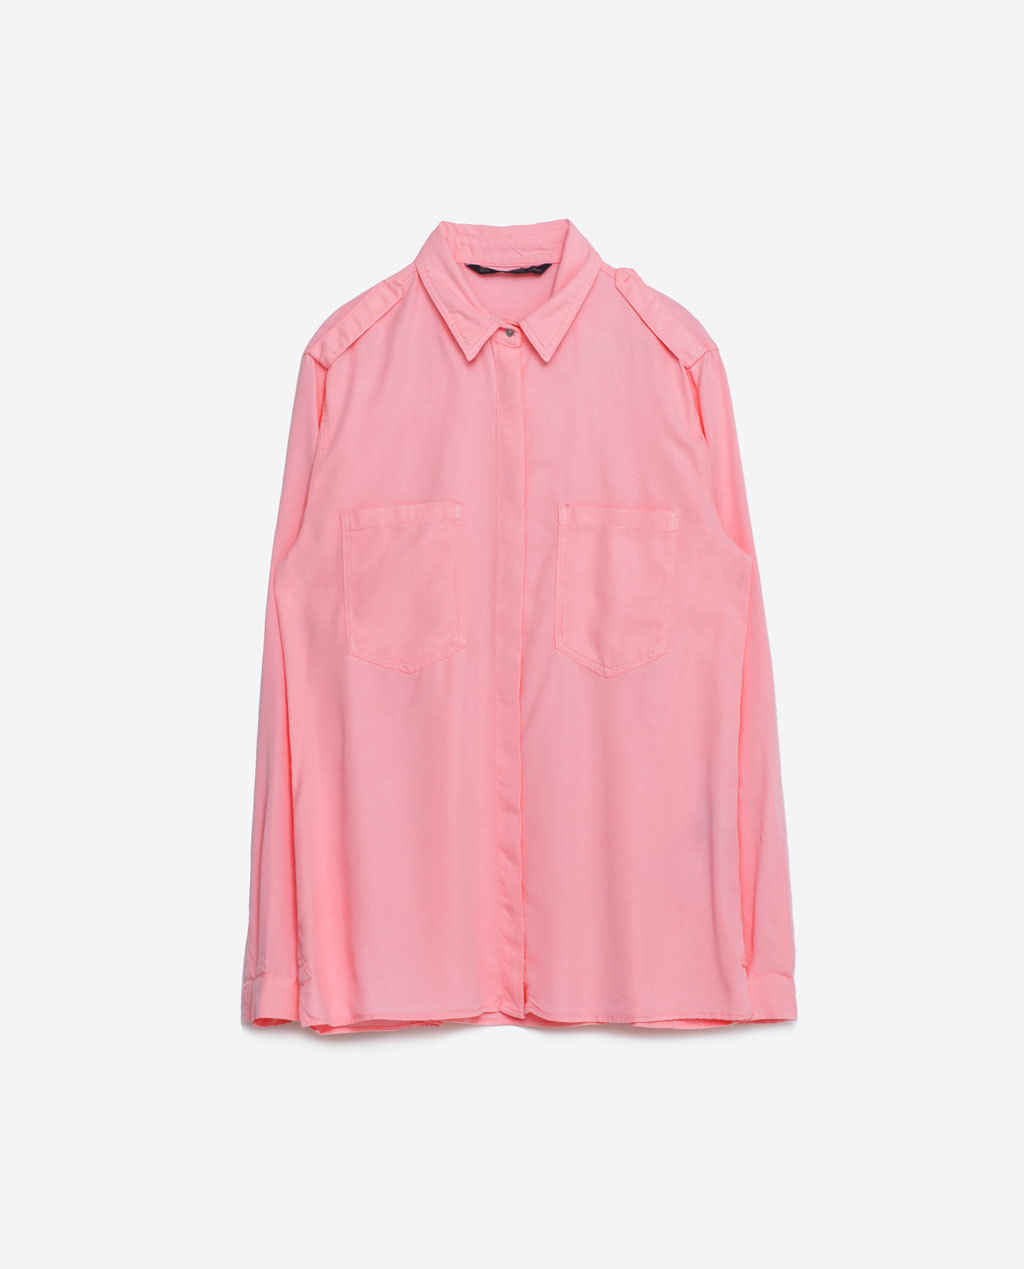 Neon Shirt - neckline: shirt collar/peter pan/zip with opening; pattern: plain; style: shirt; bust detail: pocket detail at bust; predominant colour: pink; occasions: casual; length: standard; fibres: viscose/rayon - 100%; fit: body skimming; sleeve length: long sleeve; sleeve style: standard; texture group: cotton feel fabrics; pattern type: fabric; season: s/s 2016; wardrobe: highlight